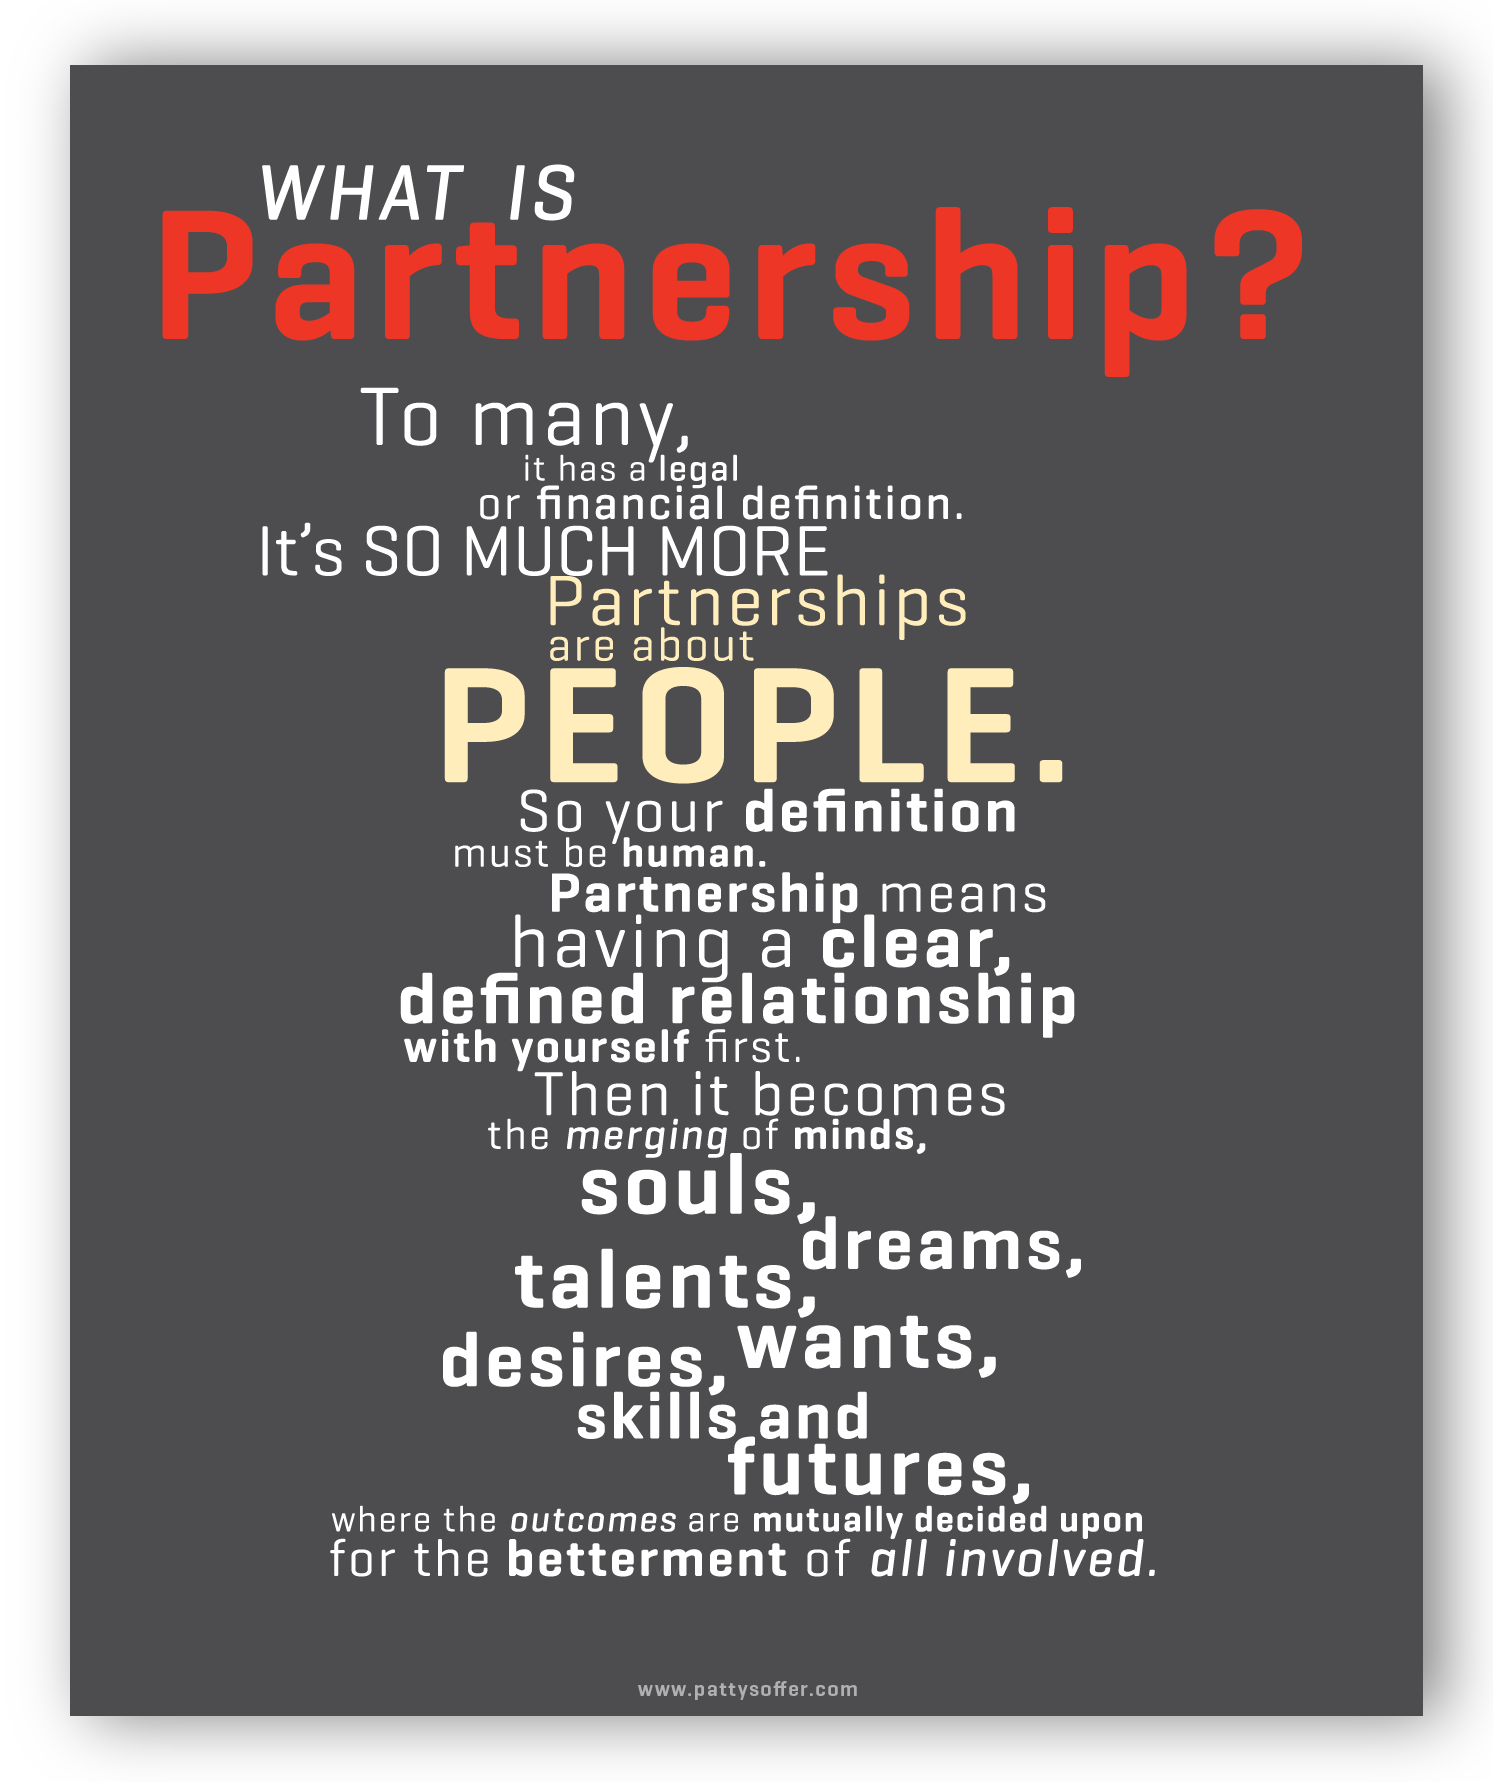 Partnership POSTER